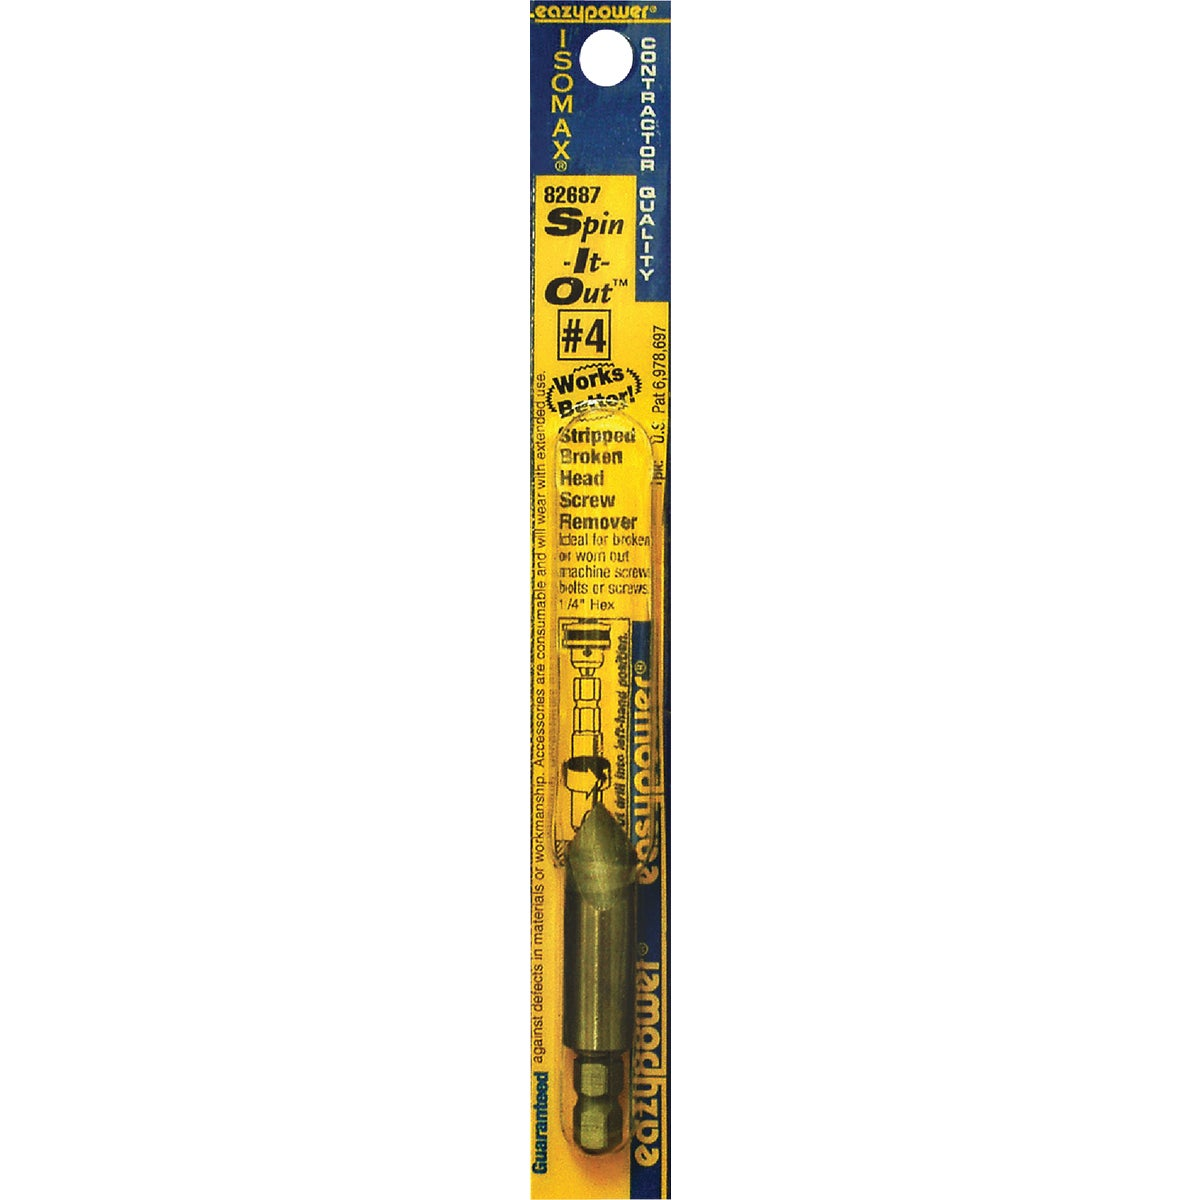 #4 SCREW REMOVER - 82687 by Eazypower Corp